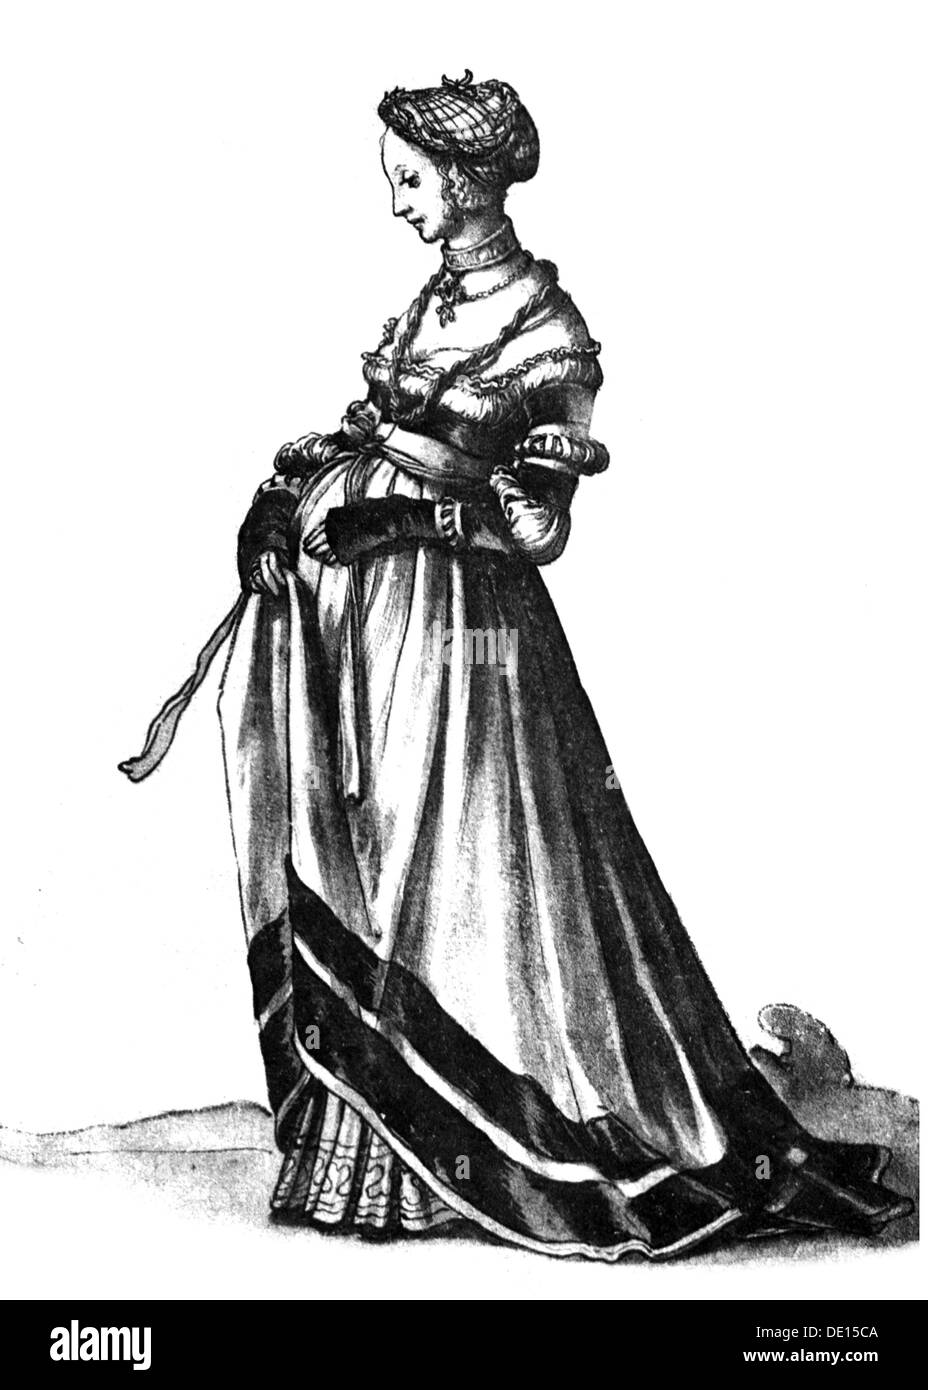 the dilemma of style in the nineteenth century and how it was addressed Romantic satanism and the rise of nineteenth-century women's poetry adriana craciun for this history has been adopted by both parties.